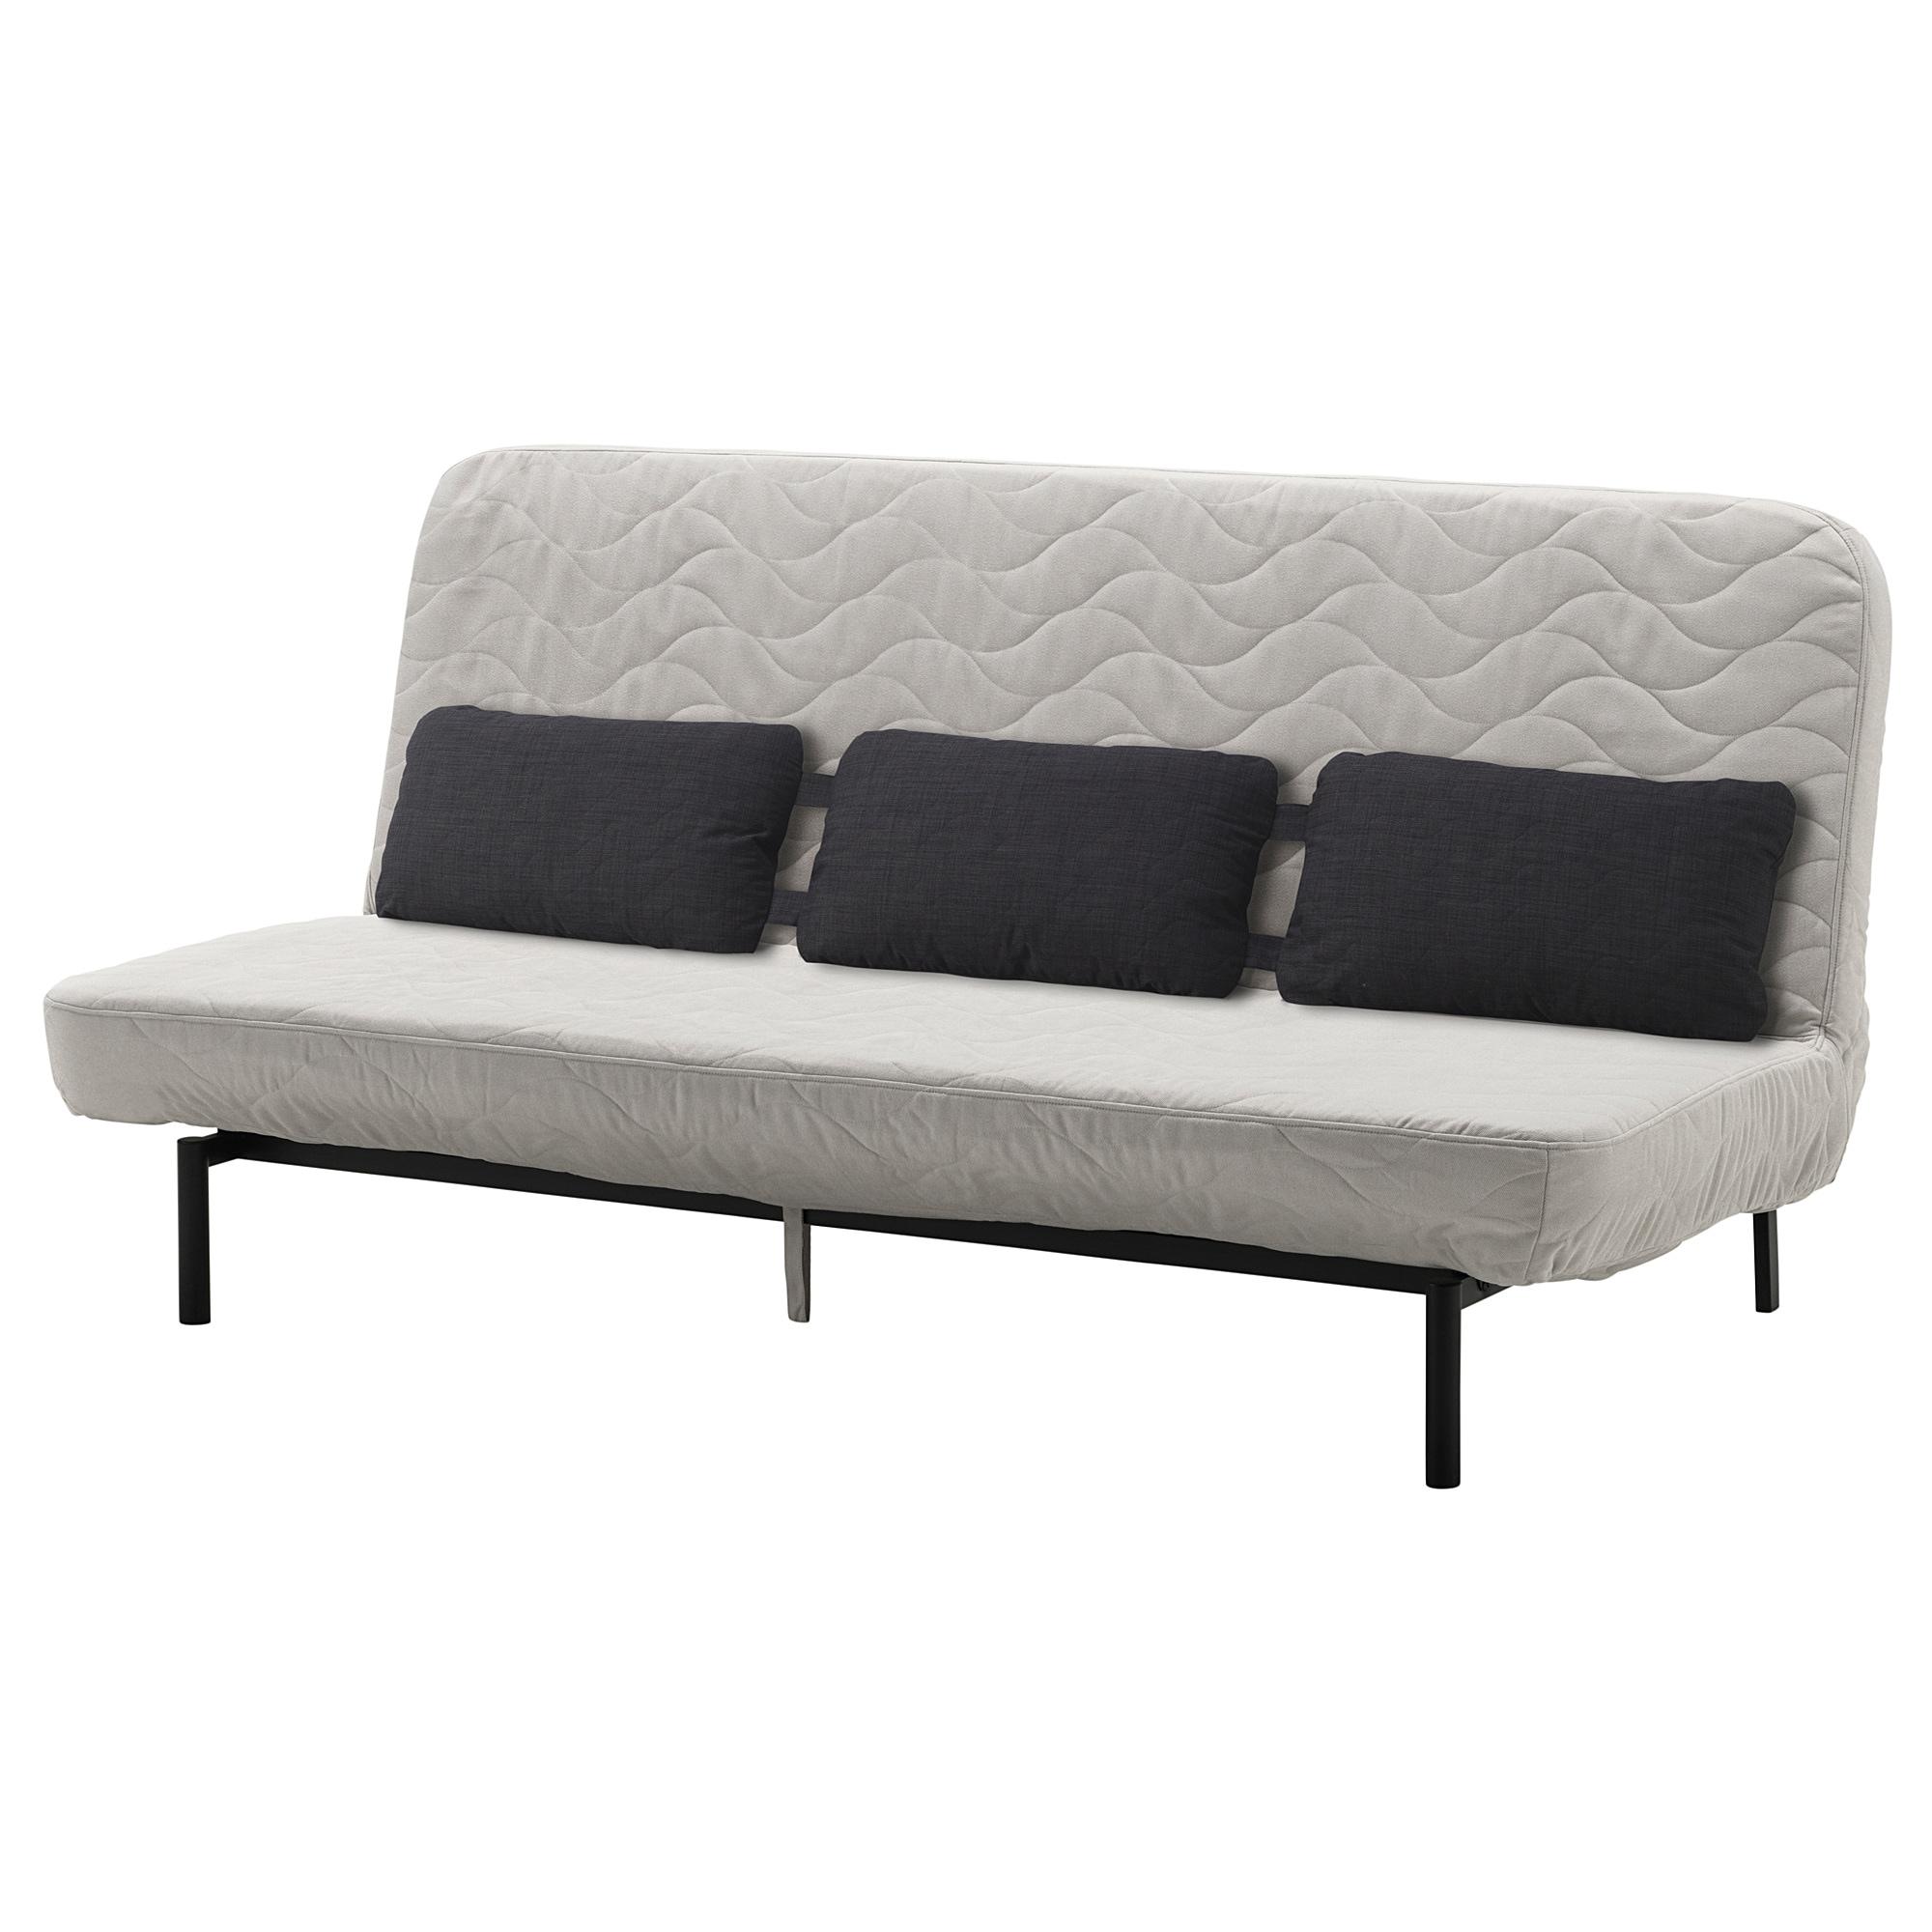 vinyl clack affiliate an more heston pinterest to grey futon details sofa click image link this review pin bed is